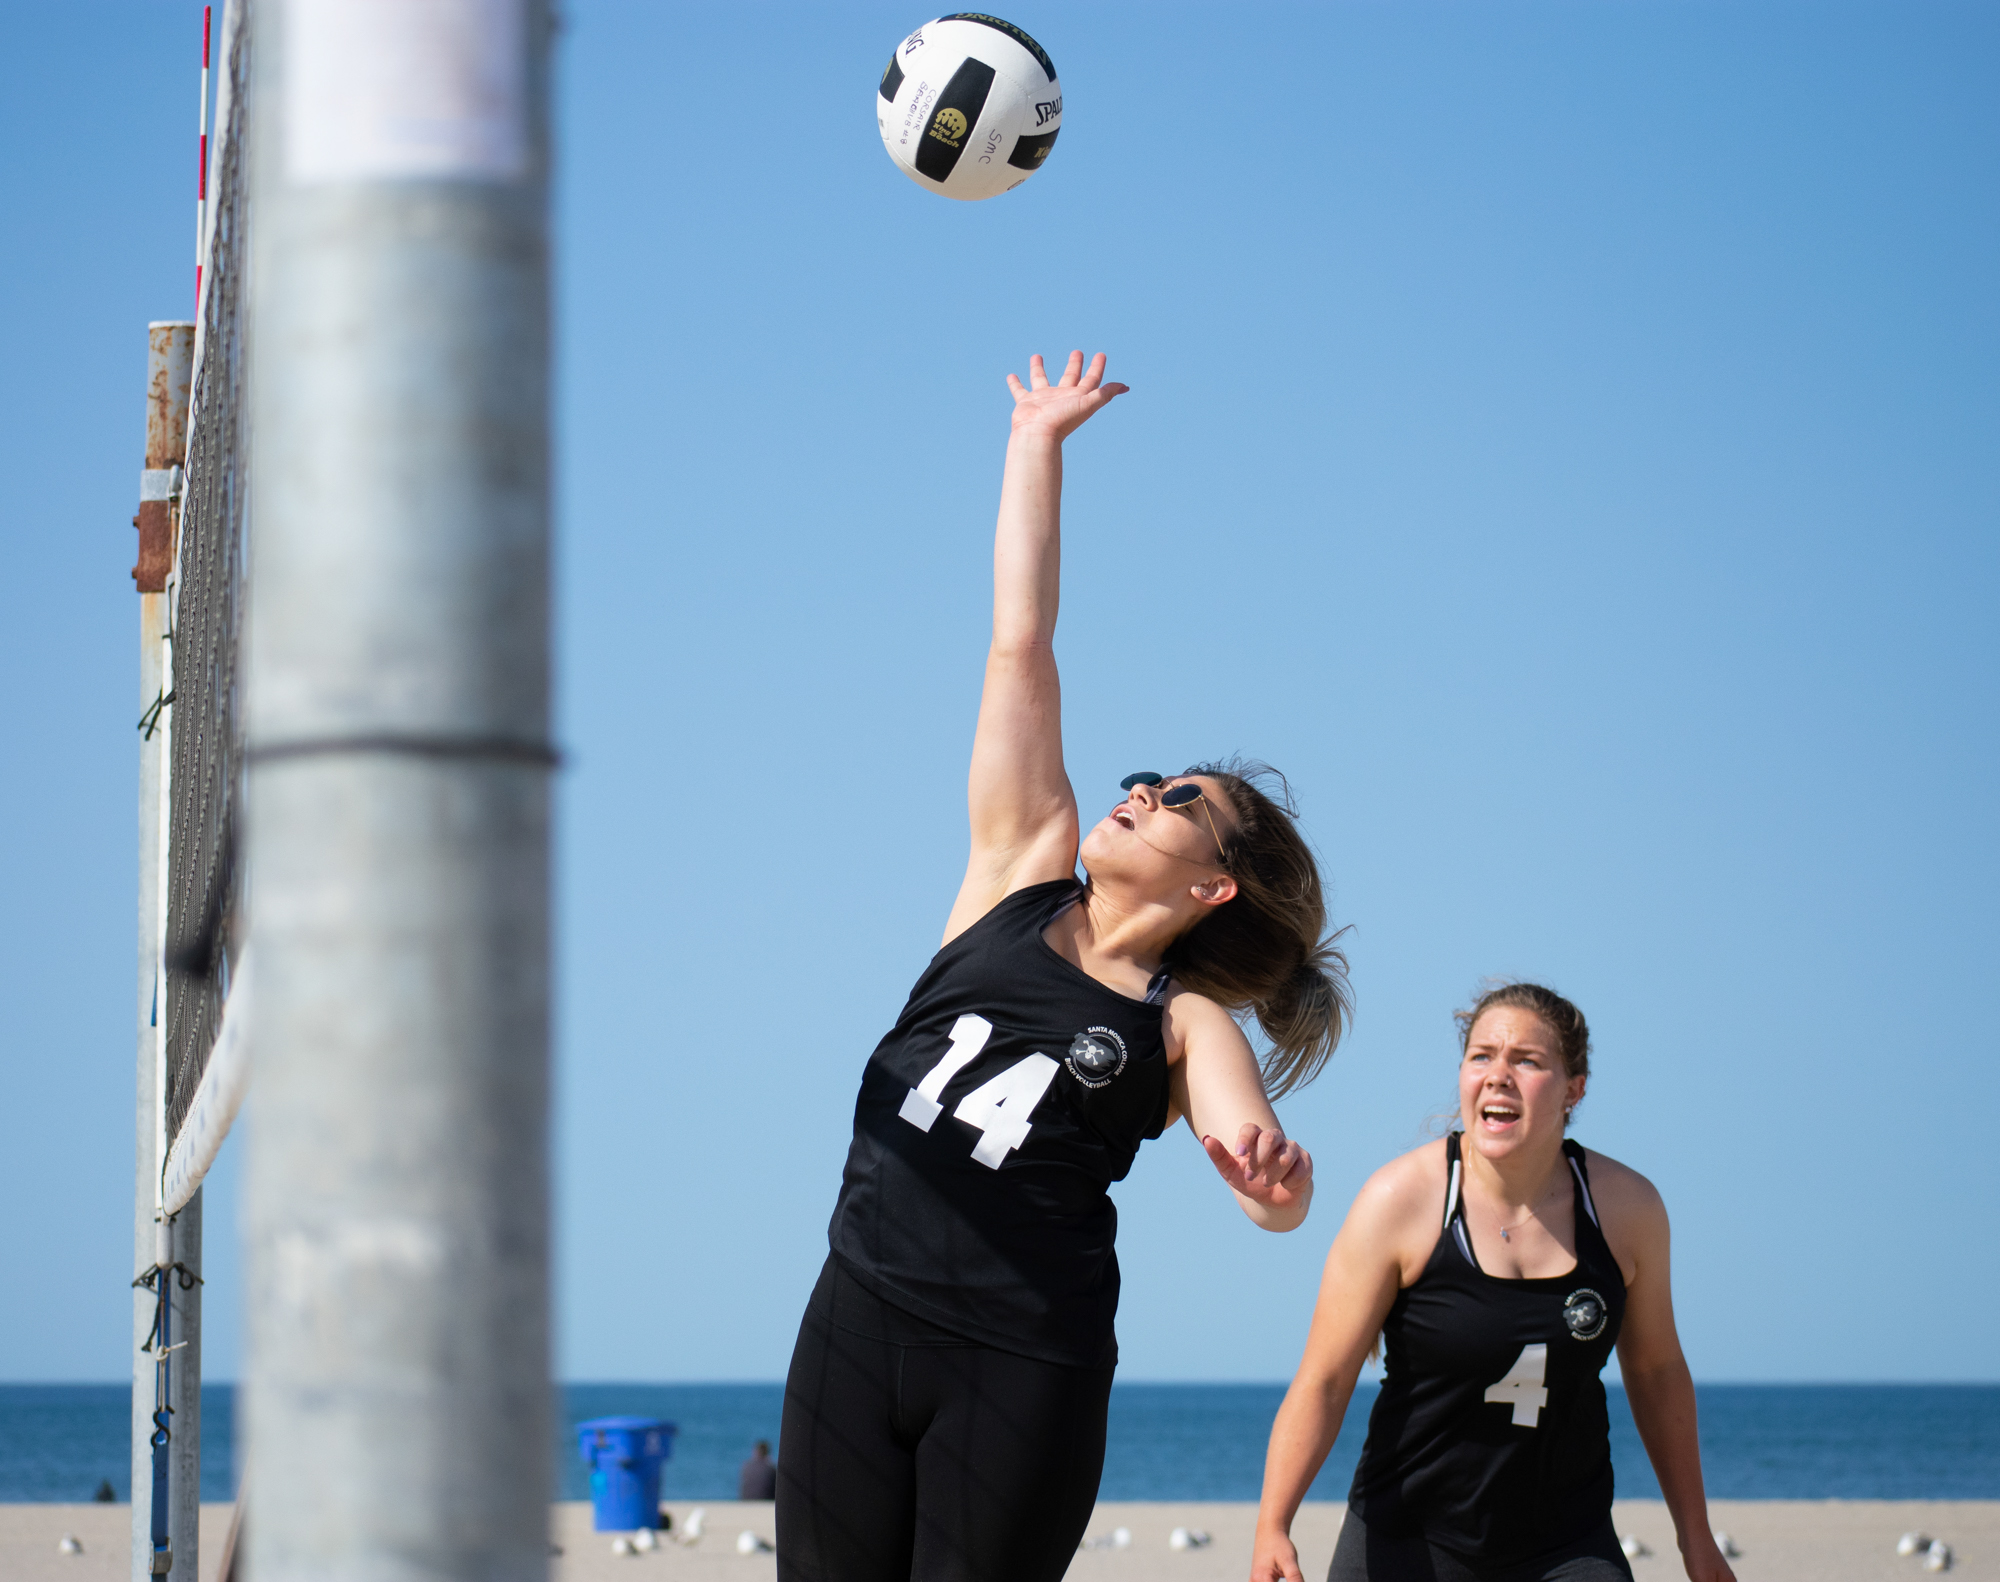 Santa Monica College Corsair Kelsi Pich (#14) attempts to defend the ball as partner Camryne Sommaripa (#4) looks on during a conference game of beach volleyball in court four against the Ventura College Pirates at the Santa Monica beach on Friday, April 13, 2018 in Santa Monica, California. It was a 4-1 loss for the Corsairs, bringing their total to 2-11 for the season. (Ethan Lauren/Corsair Photo)